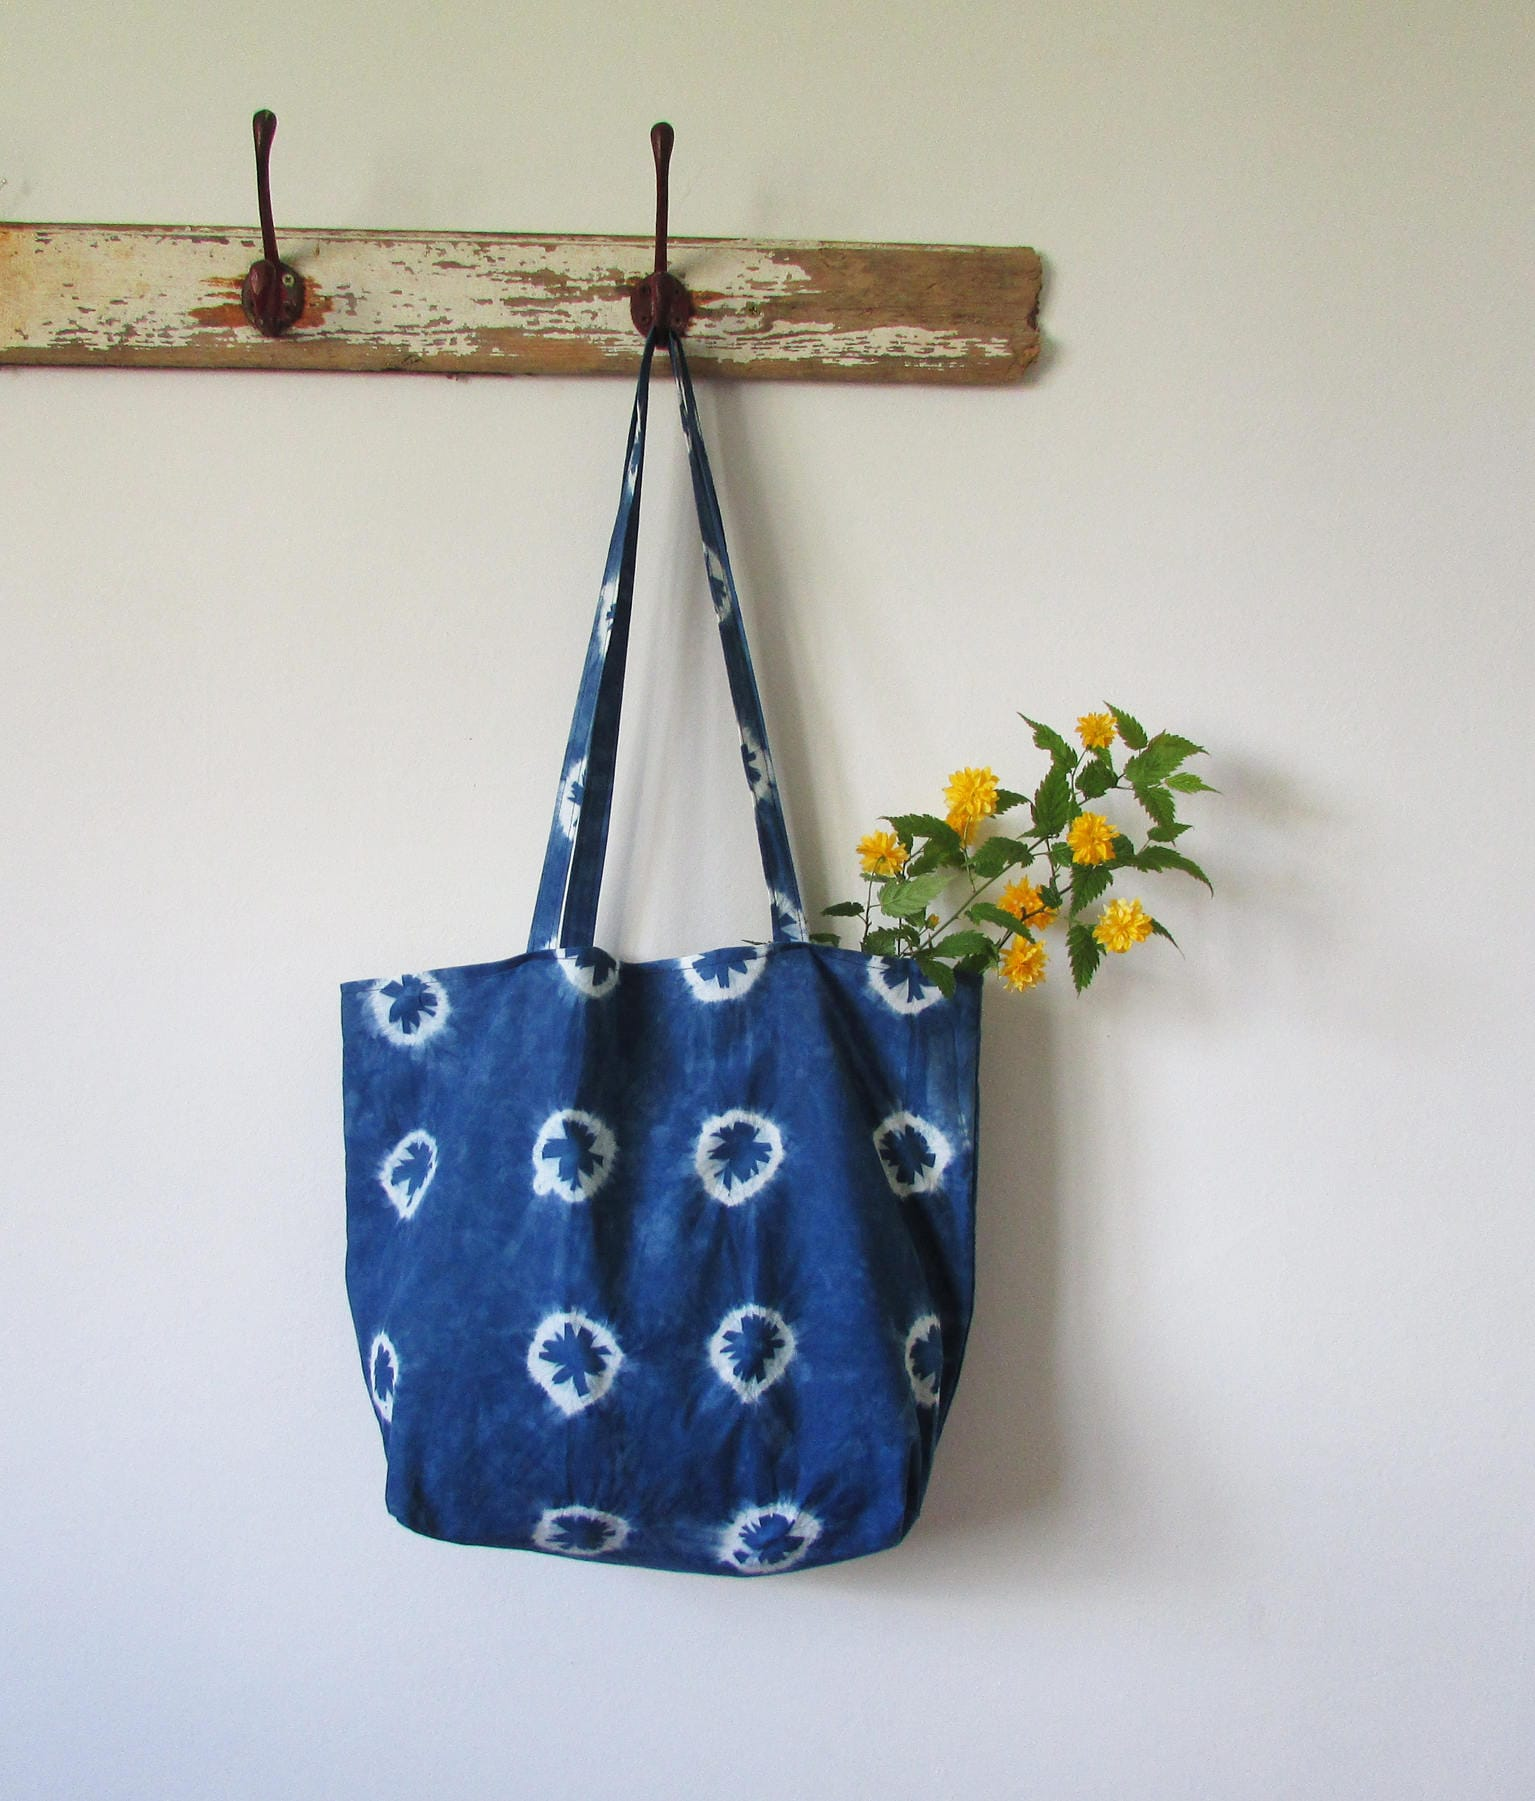 Indigo bag blue shibori bag Alternative Gift Bohemian trend Festival clothing Girlfriend gift Hippy bag Beach bag Fold away shopper INDI0198